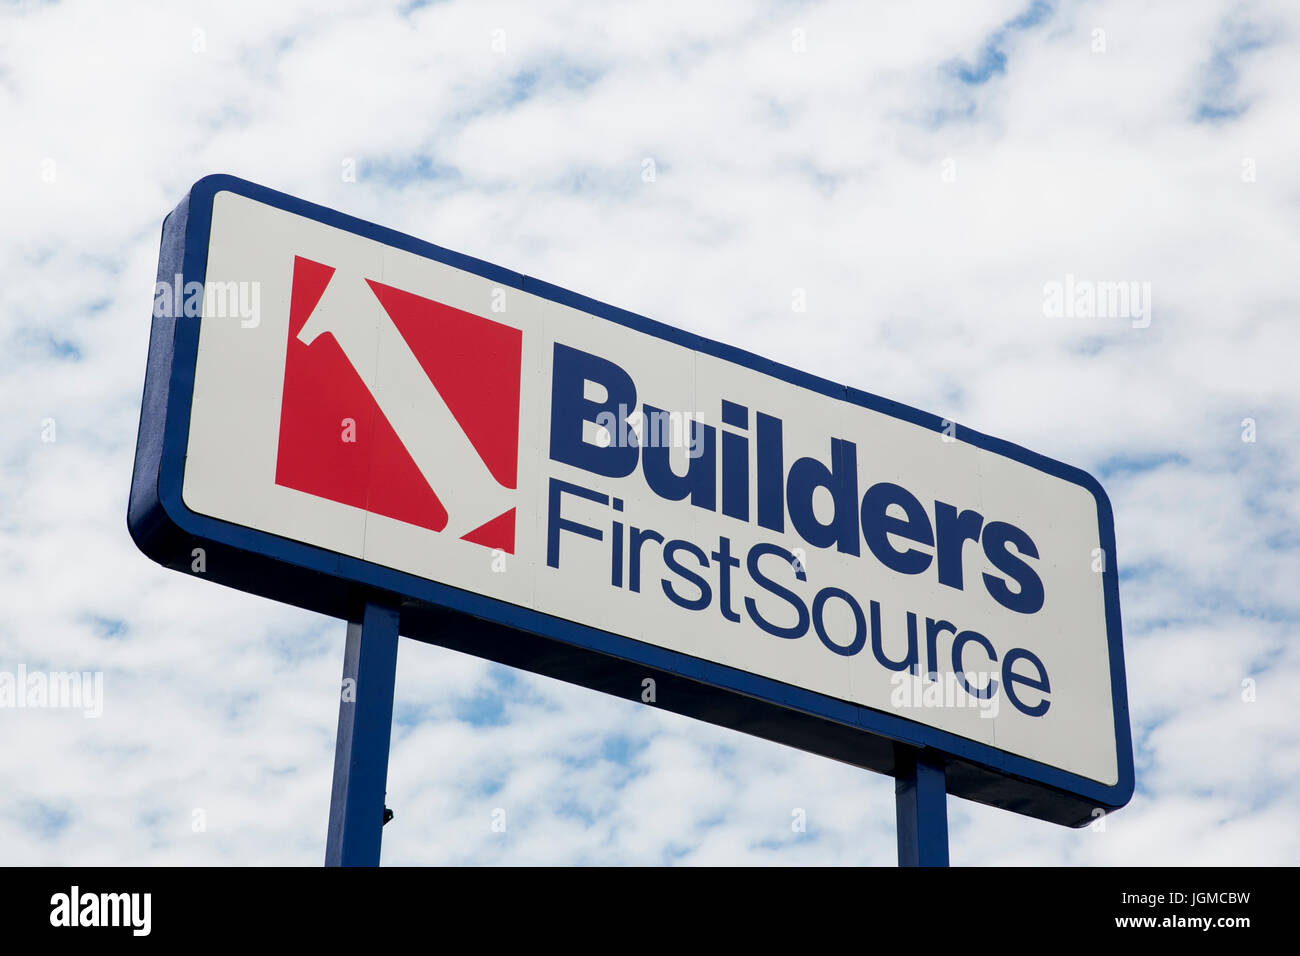 Builders Firstsource Stock Photos & Builders Firstsource